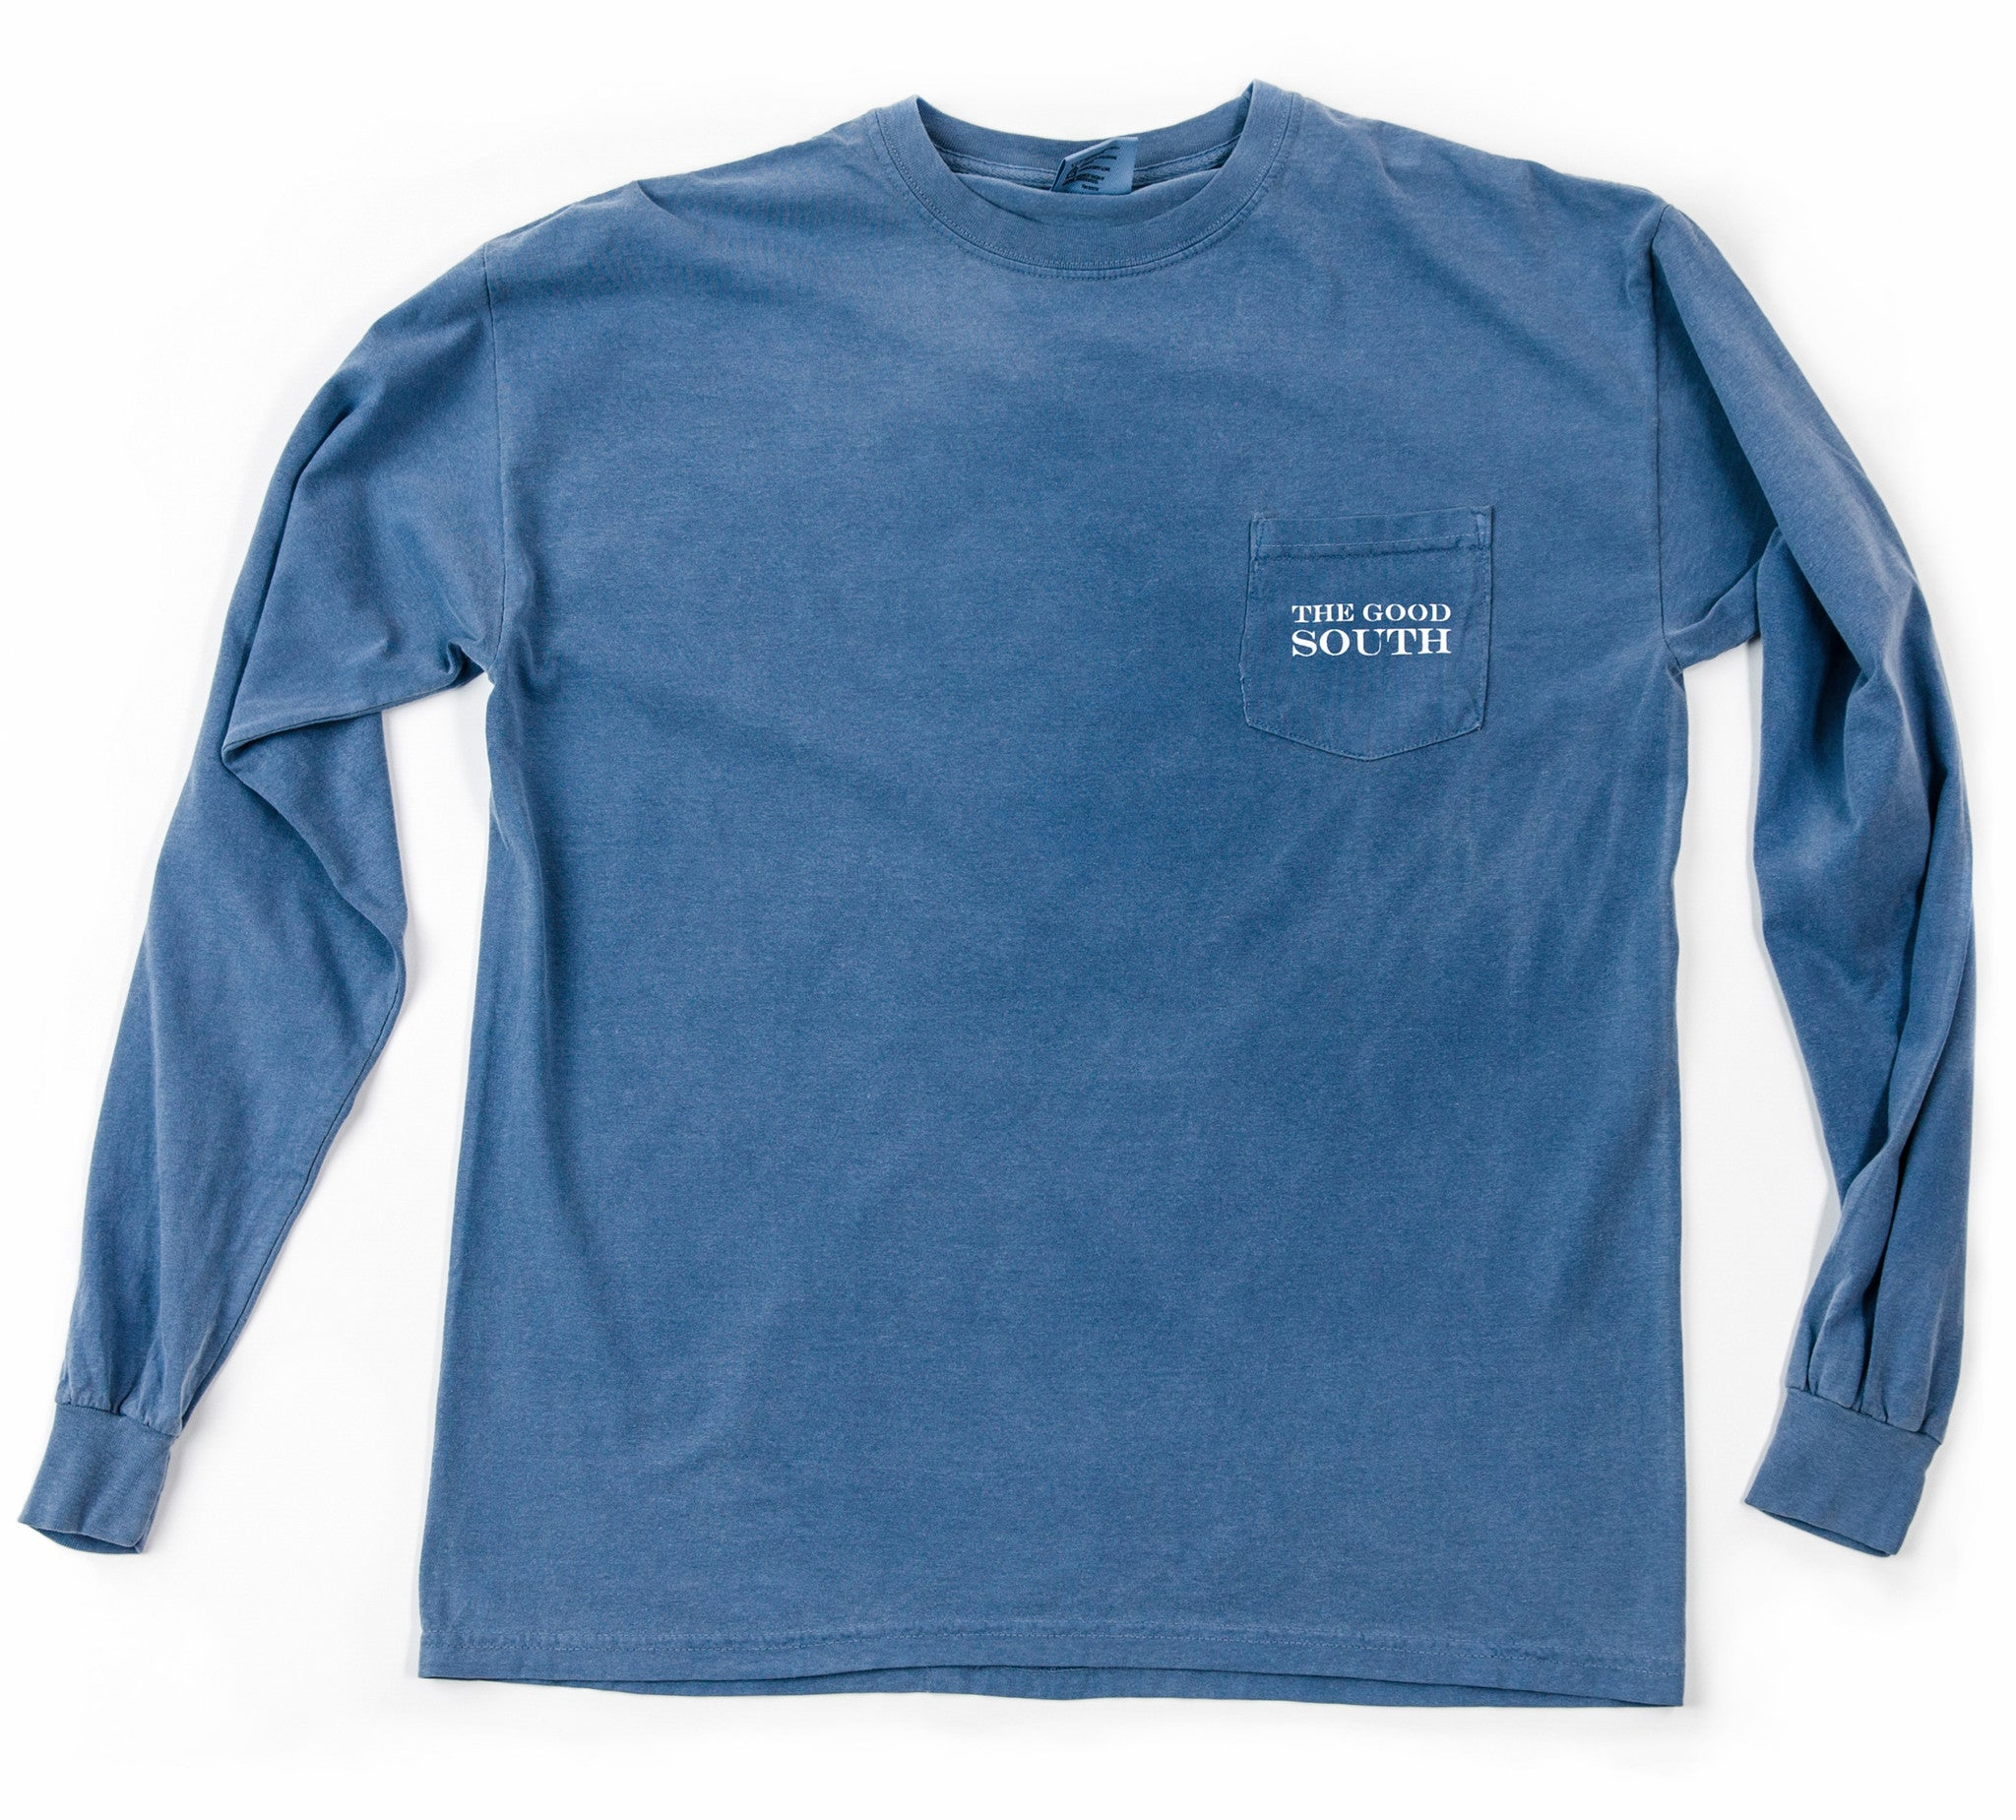 The Good South Long Sleeve T-Shirt: Blue Jean